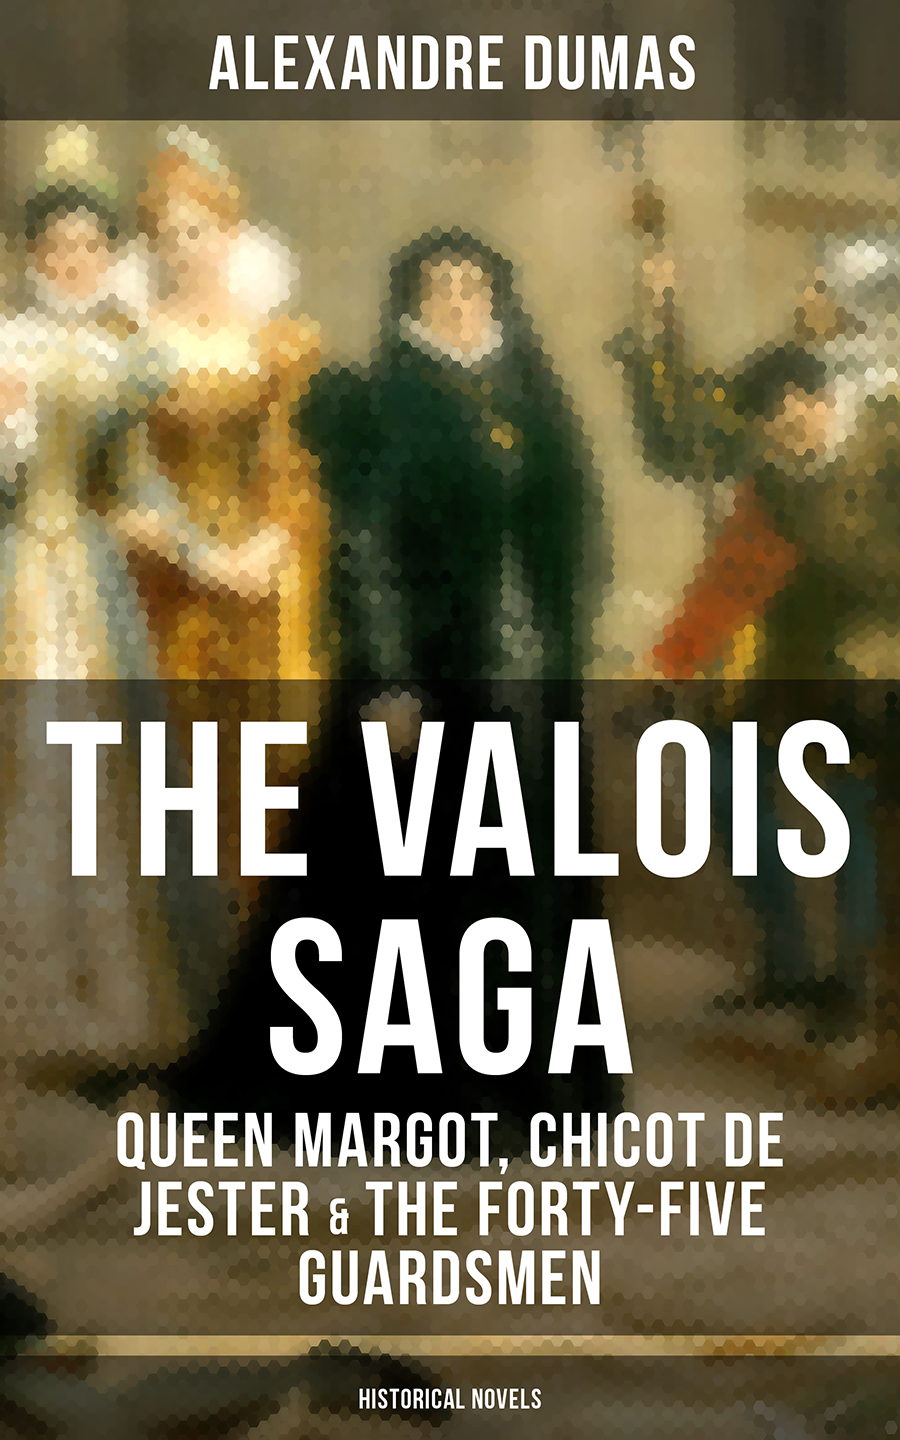 Alexandre Dumas THE VALOIS SAGA: Queen Margot, Chicot de Jester & The Forty-Five Guardsmen (Historical Novels) the first forty days